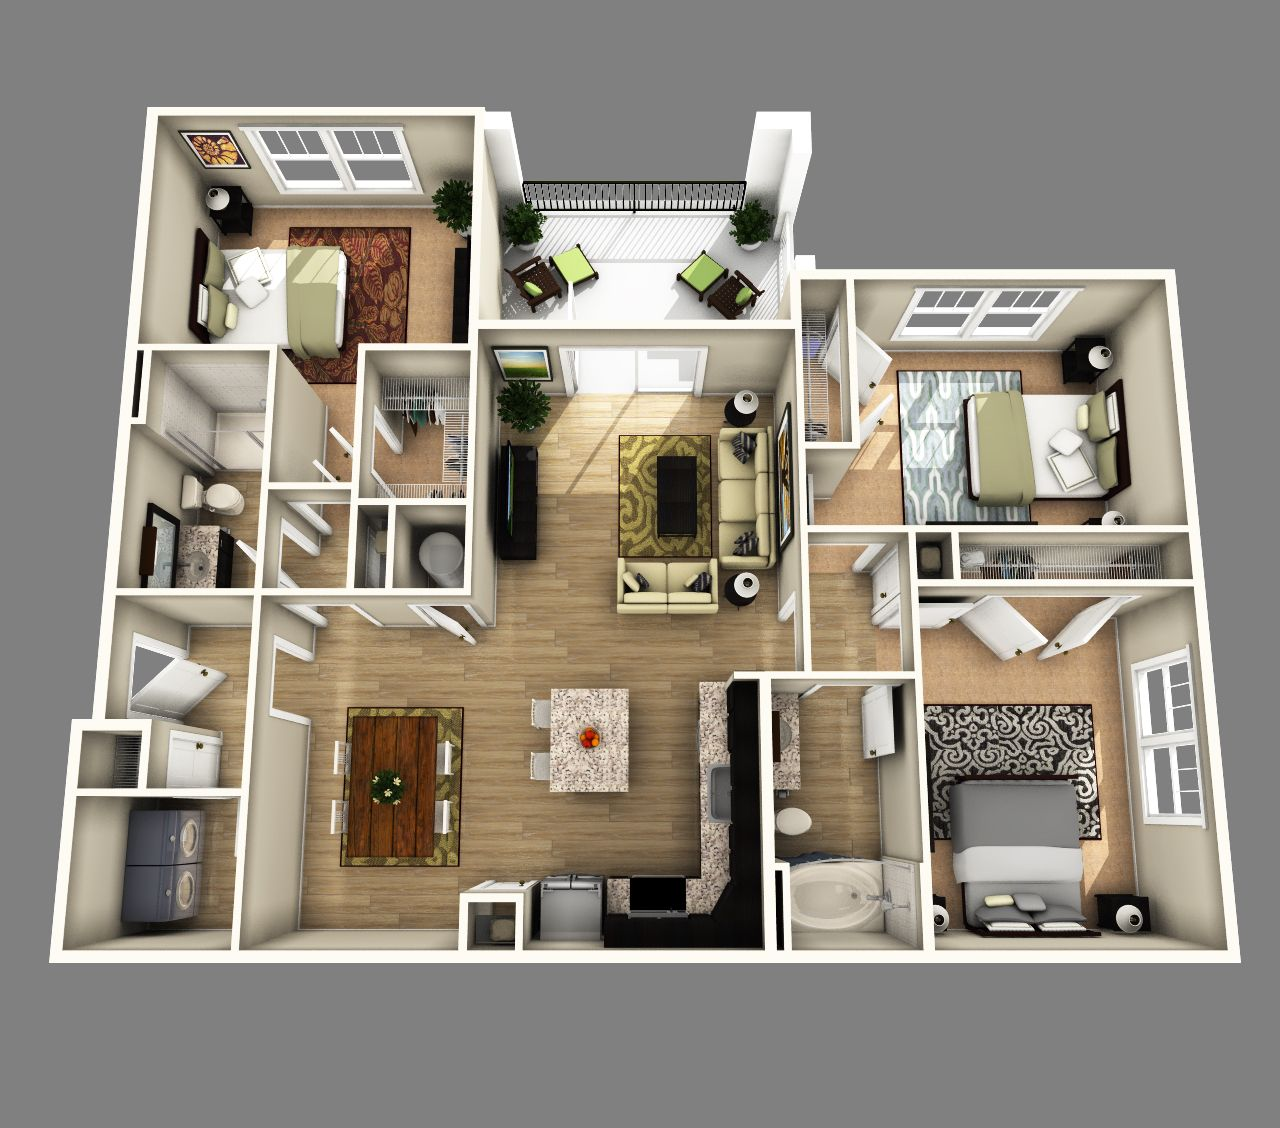 3d open floor plan 3 bedroom 2 bathroom google search for 3 room flat floor plan